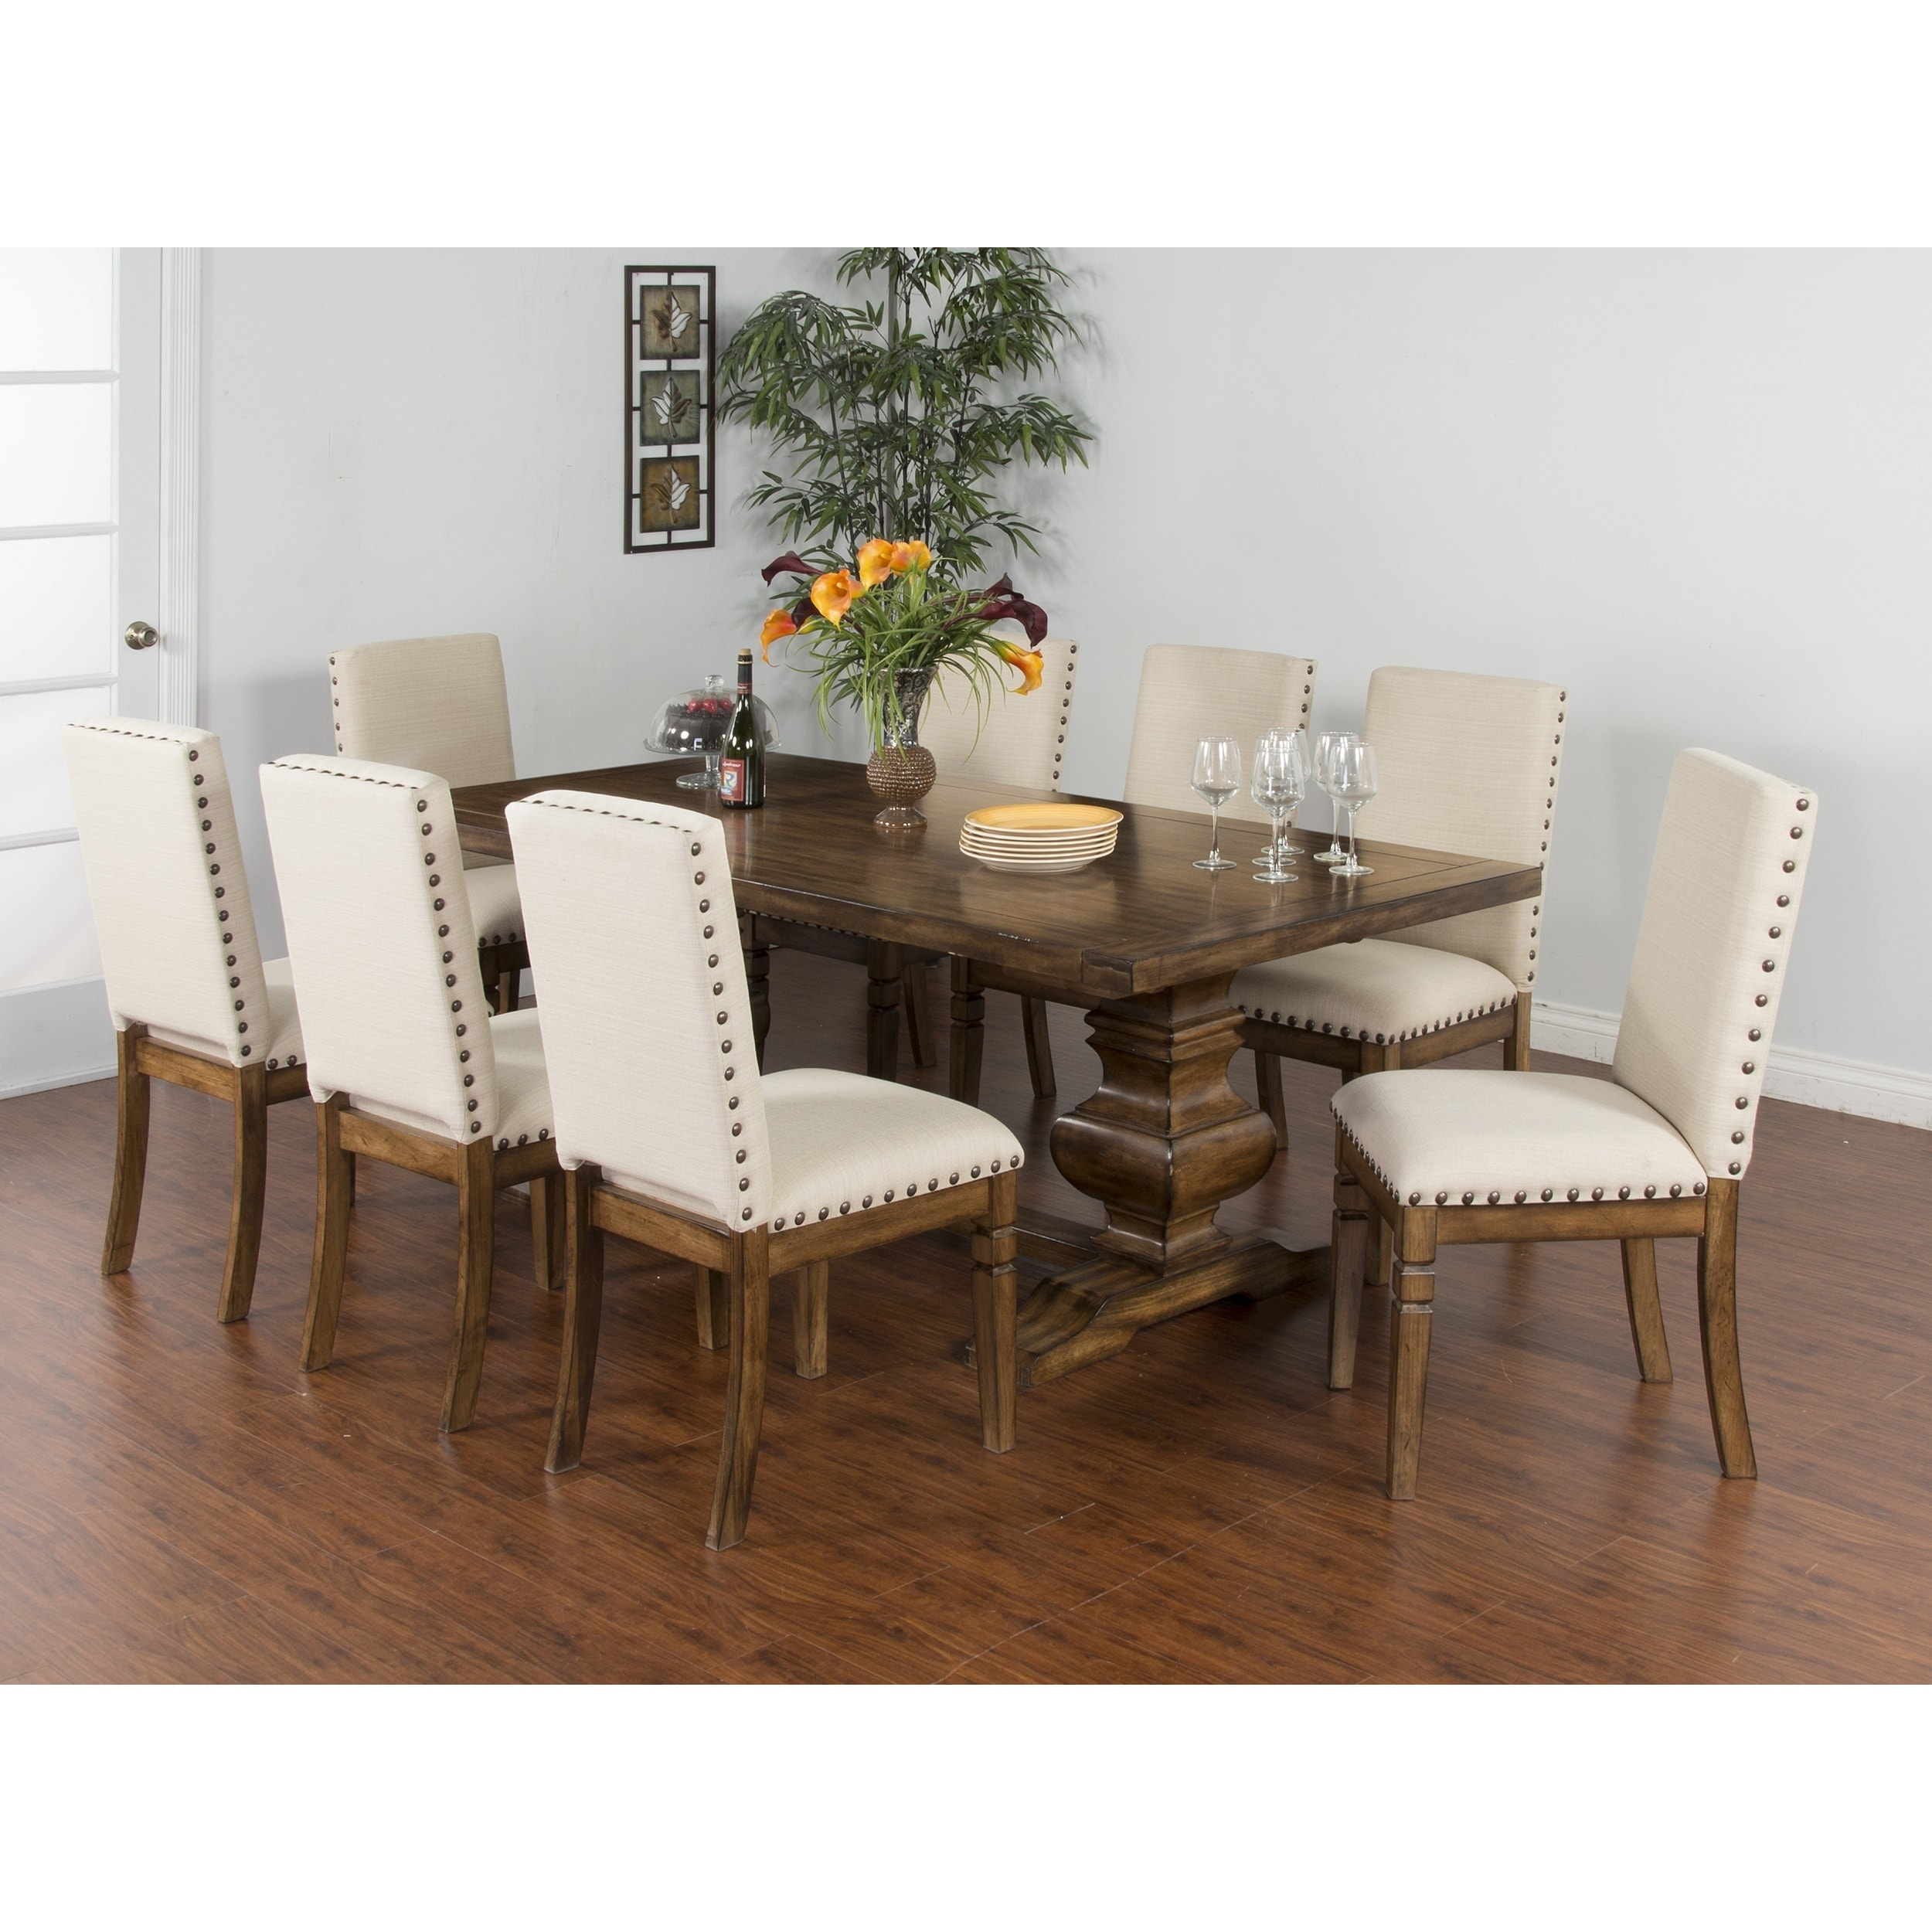 Sunny Designs Cornerstone Extension Dining Table - Free Shipping Today -  Overstock.com - 17821481